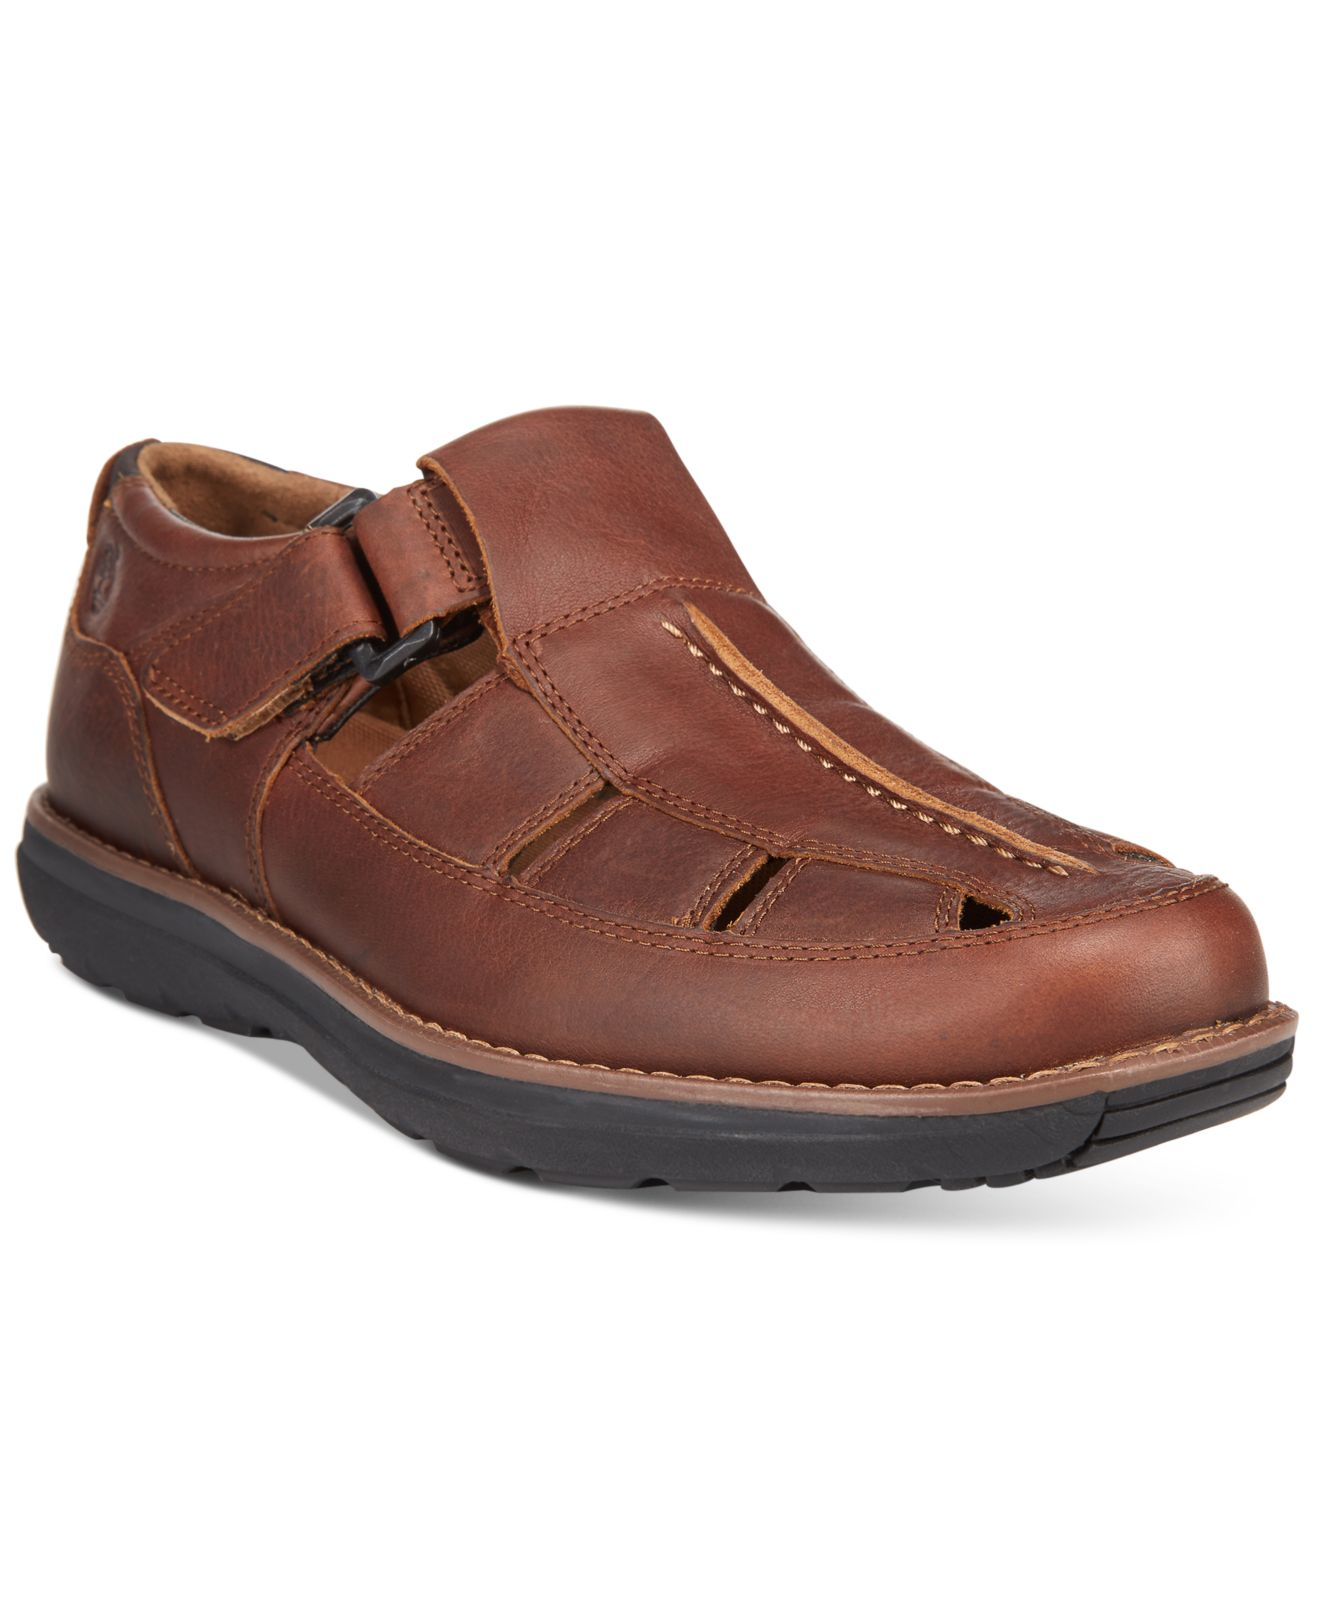 a56aad6098ef Lyst - Timberland Men s Barrett Fisherman Sandals in Brown for Men